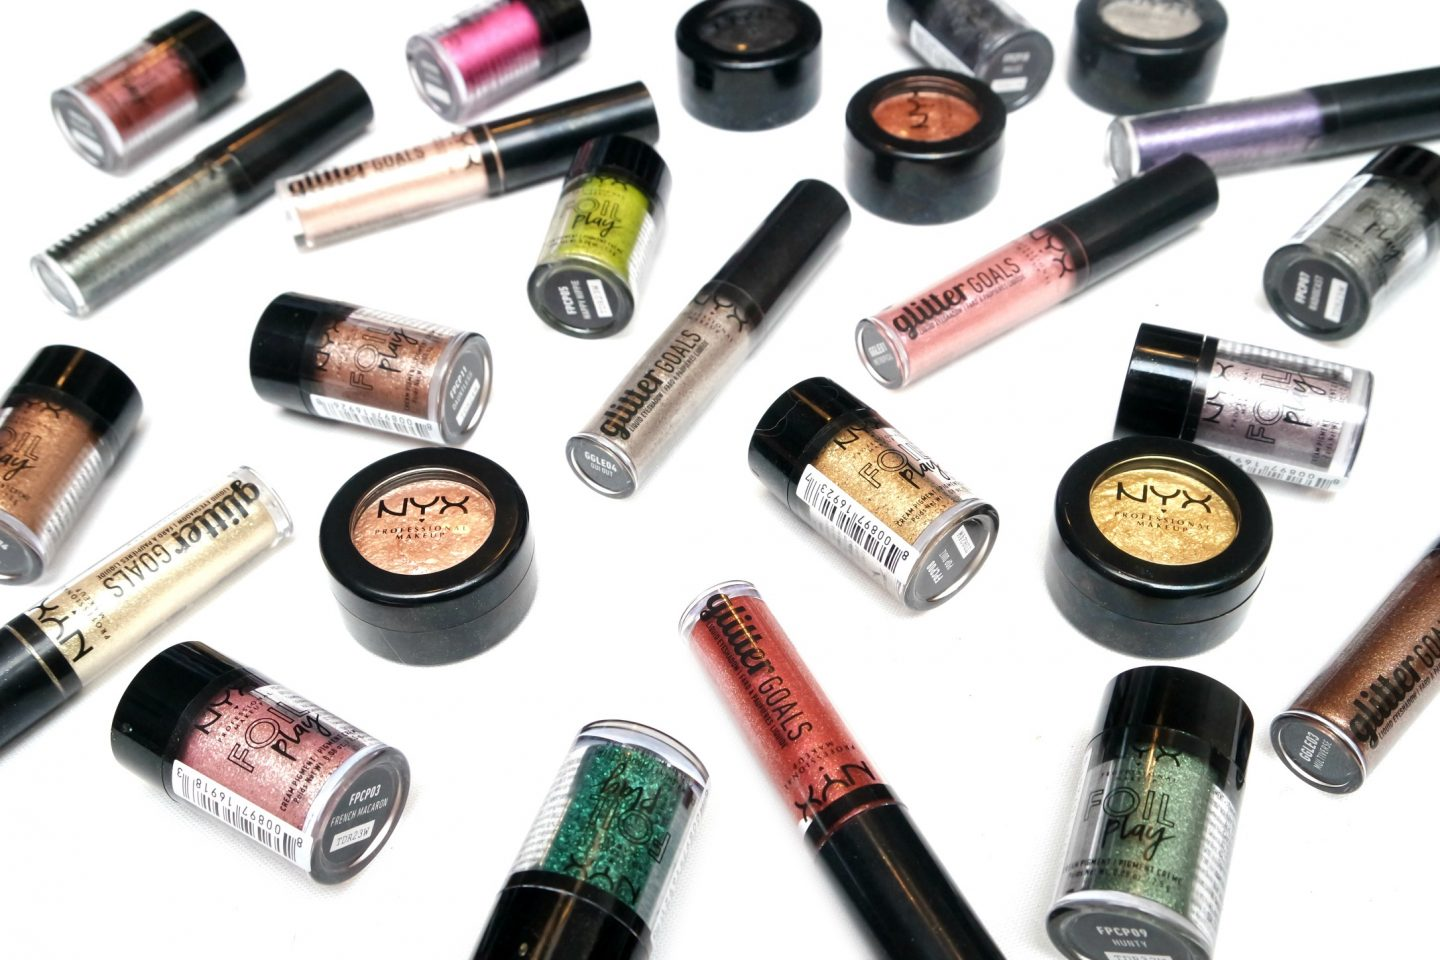 NYX Professional Makeup Foils and Glitter Eye Products